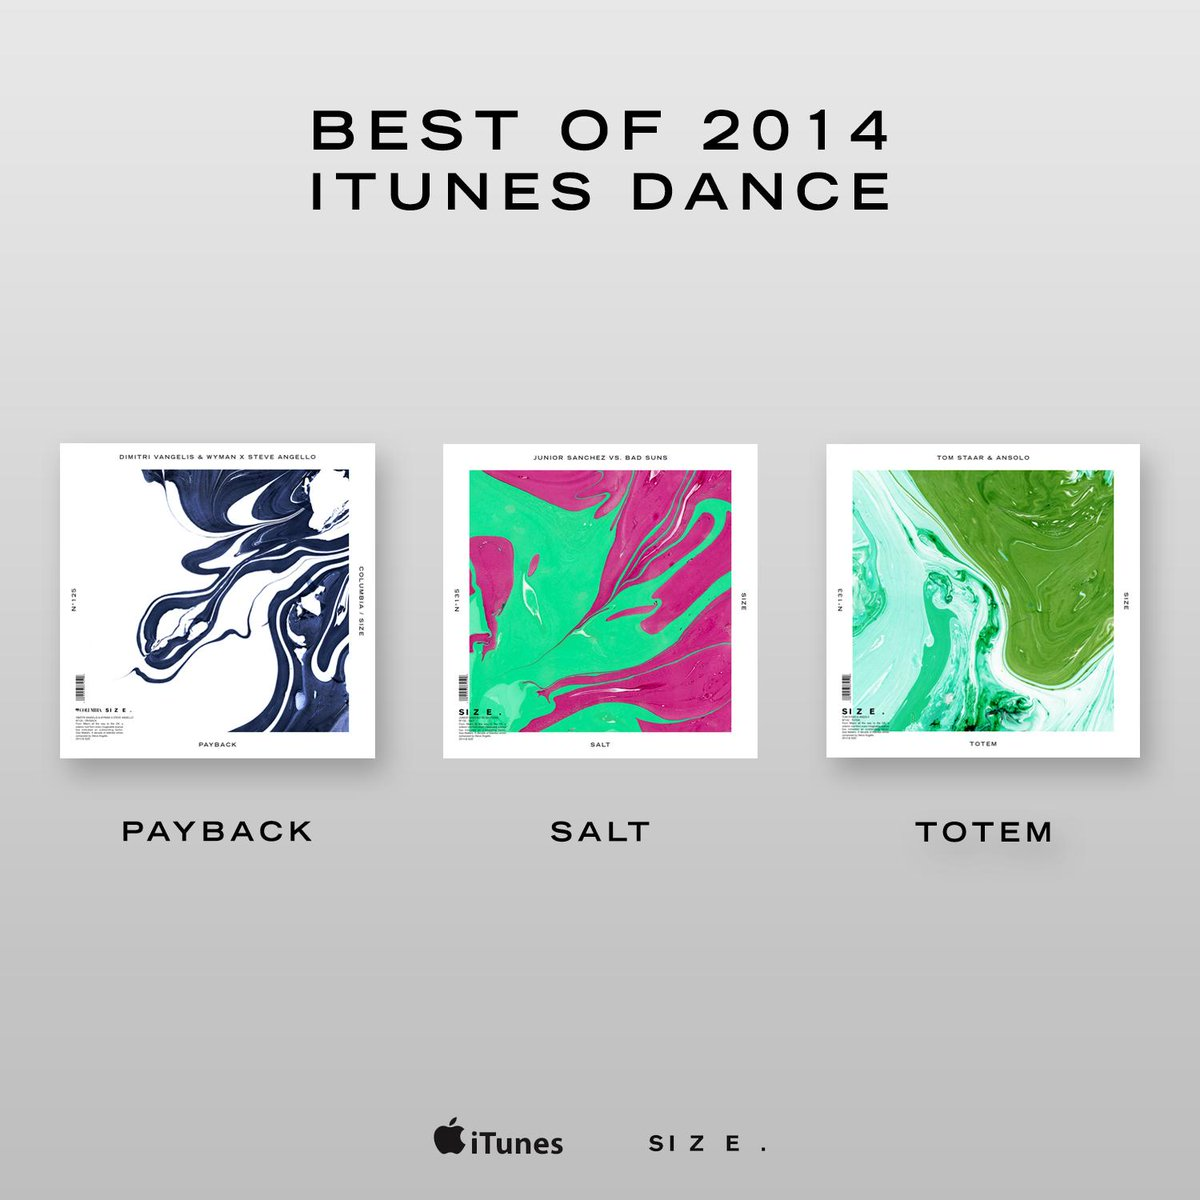 .@iTunes listed 'Payback', 'Salt', & 'Totem' as some of the best Dance tracks of 2014!! What was your favorite? http://t.co/L0MyjMnCrt